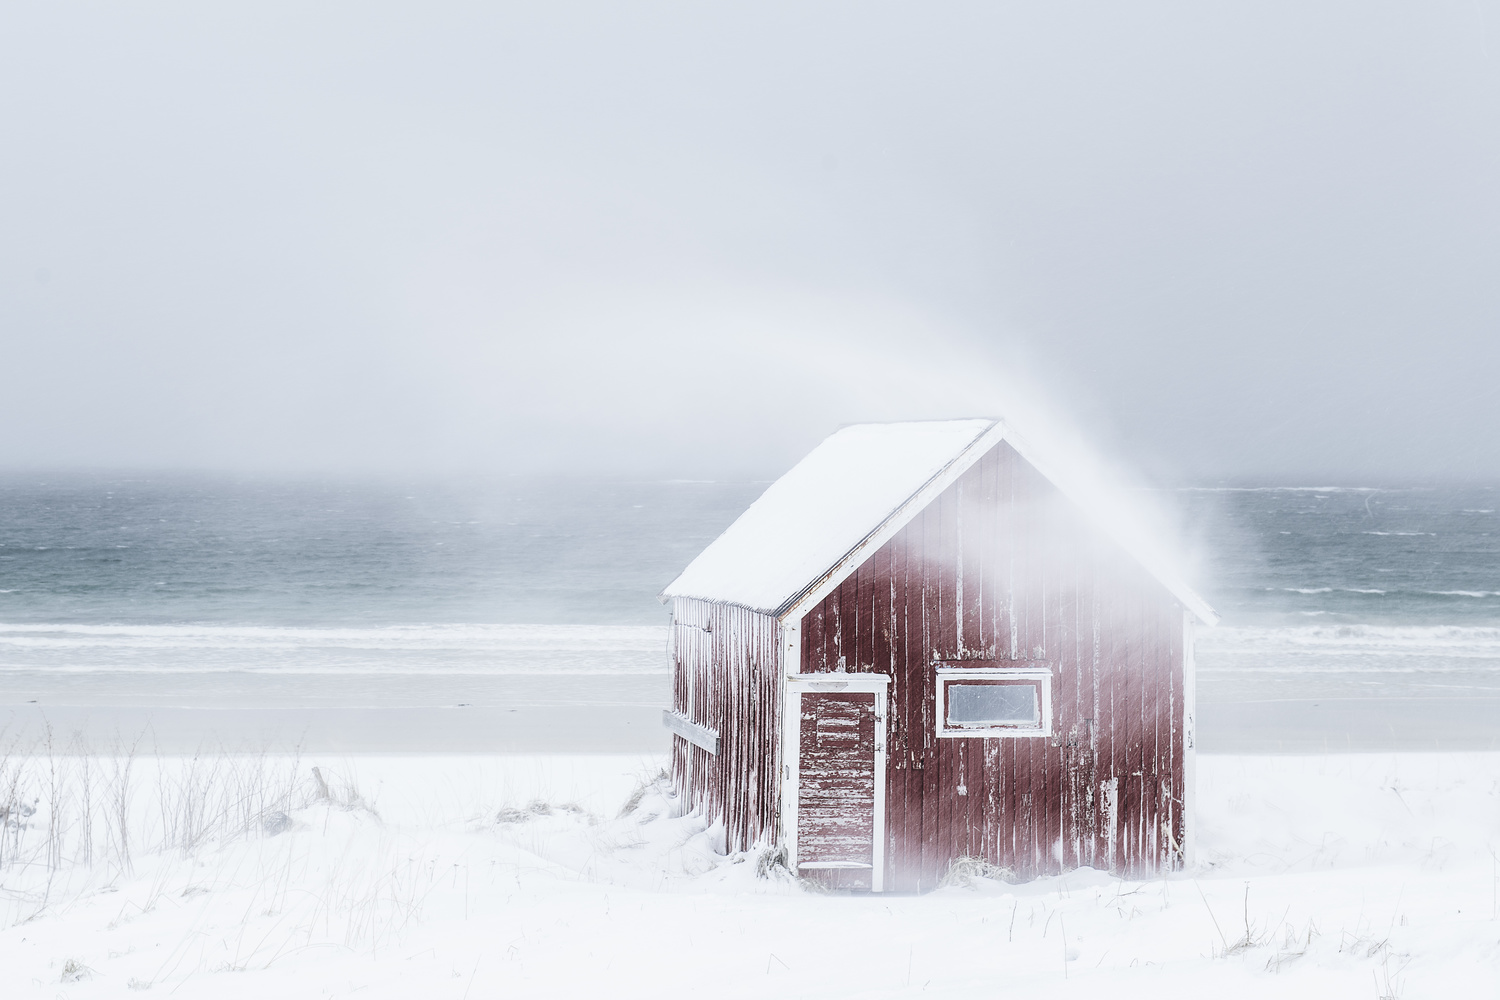 The winter has arrived by Annelin Hoff